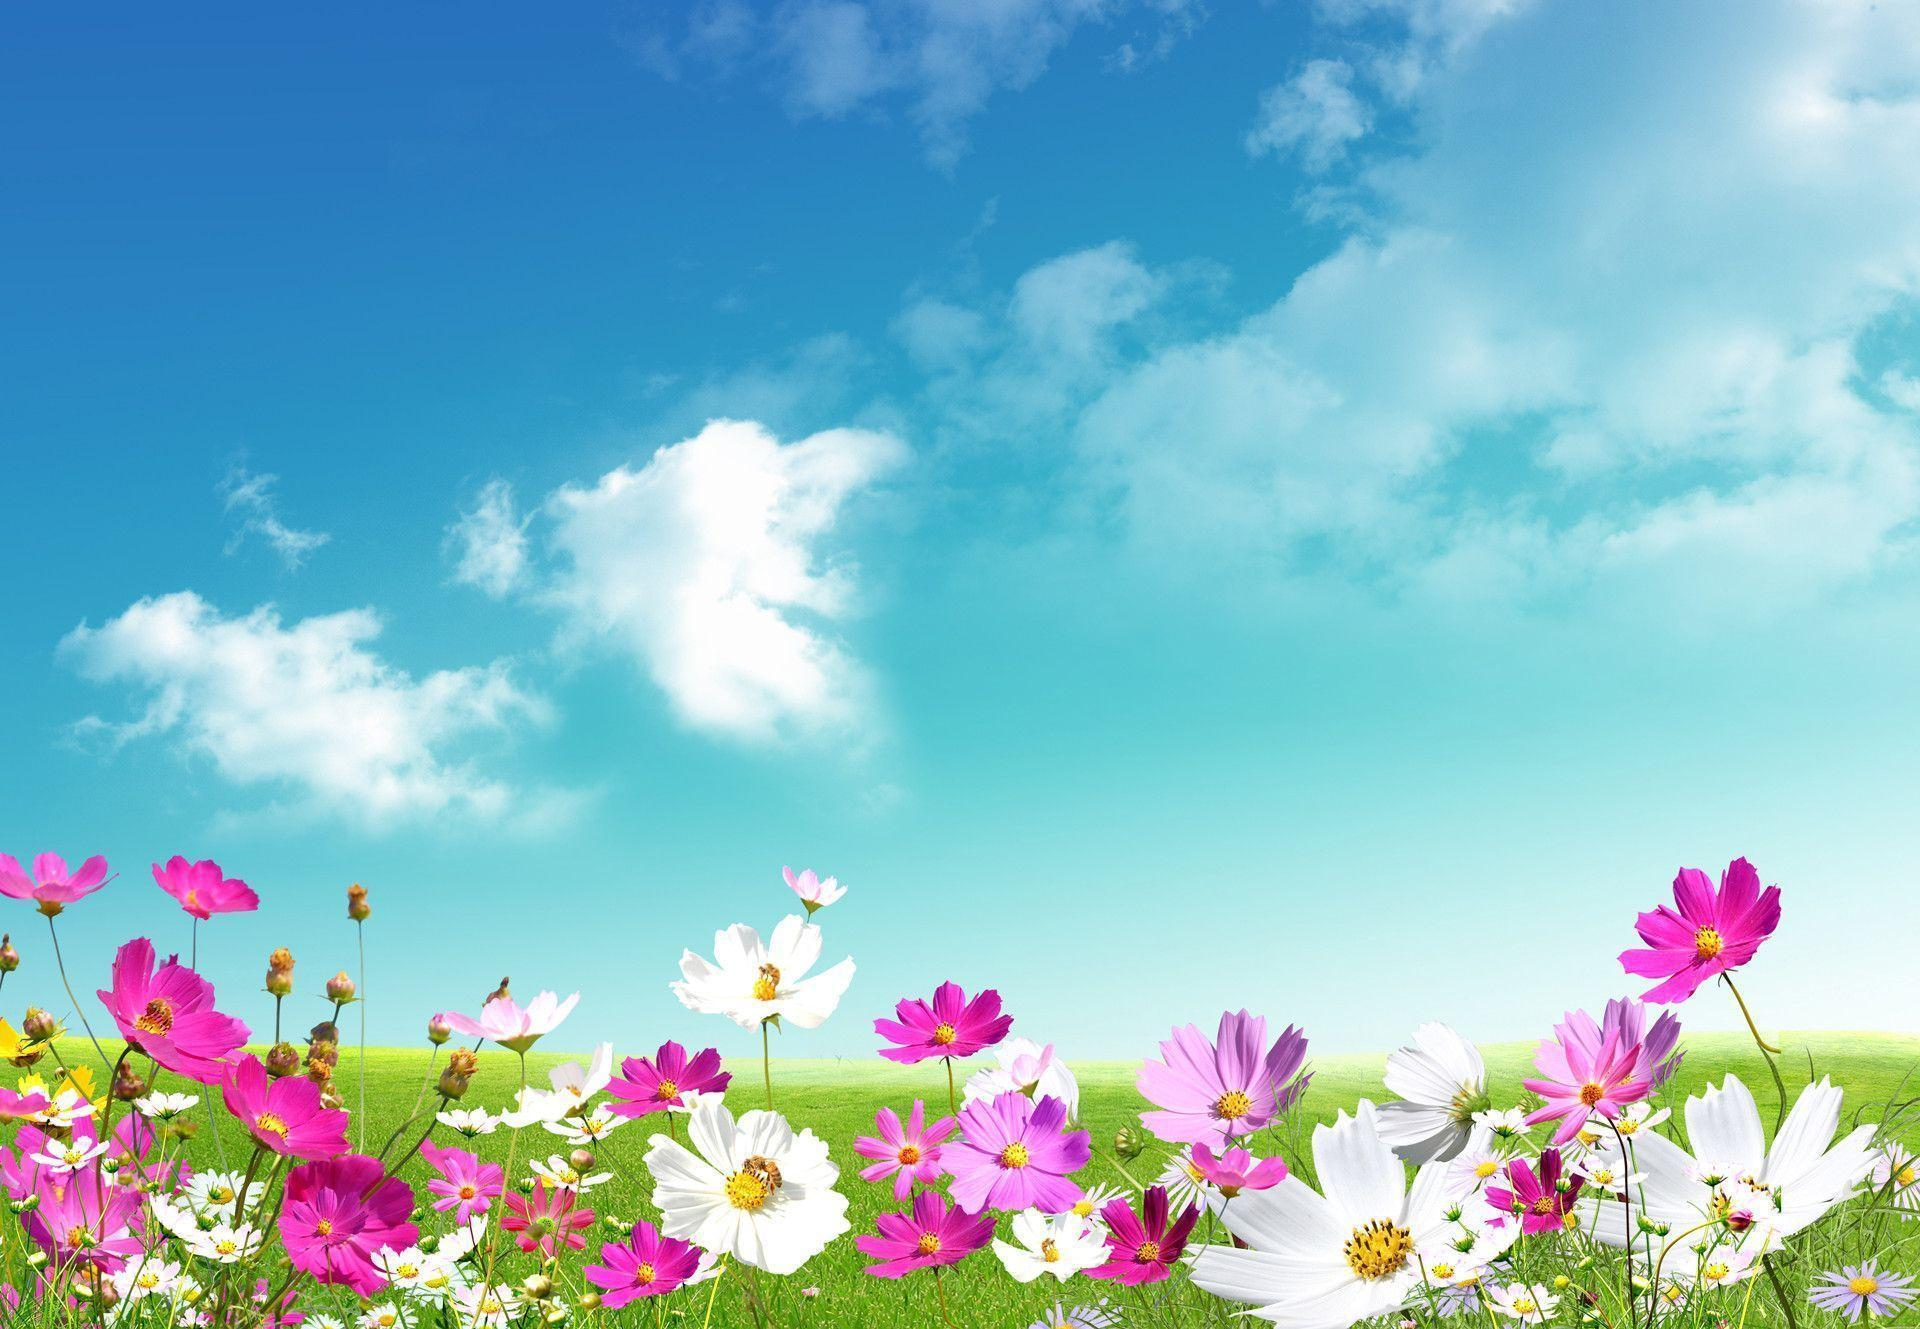 Spring Desktop Wallpaper Backgrounds 1920x1329